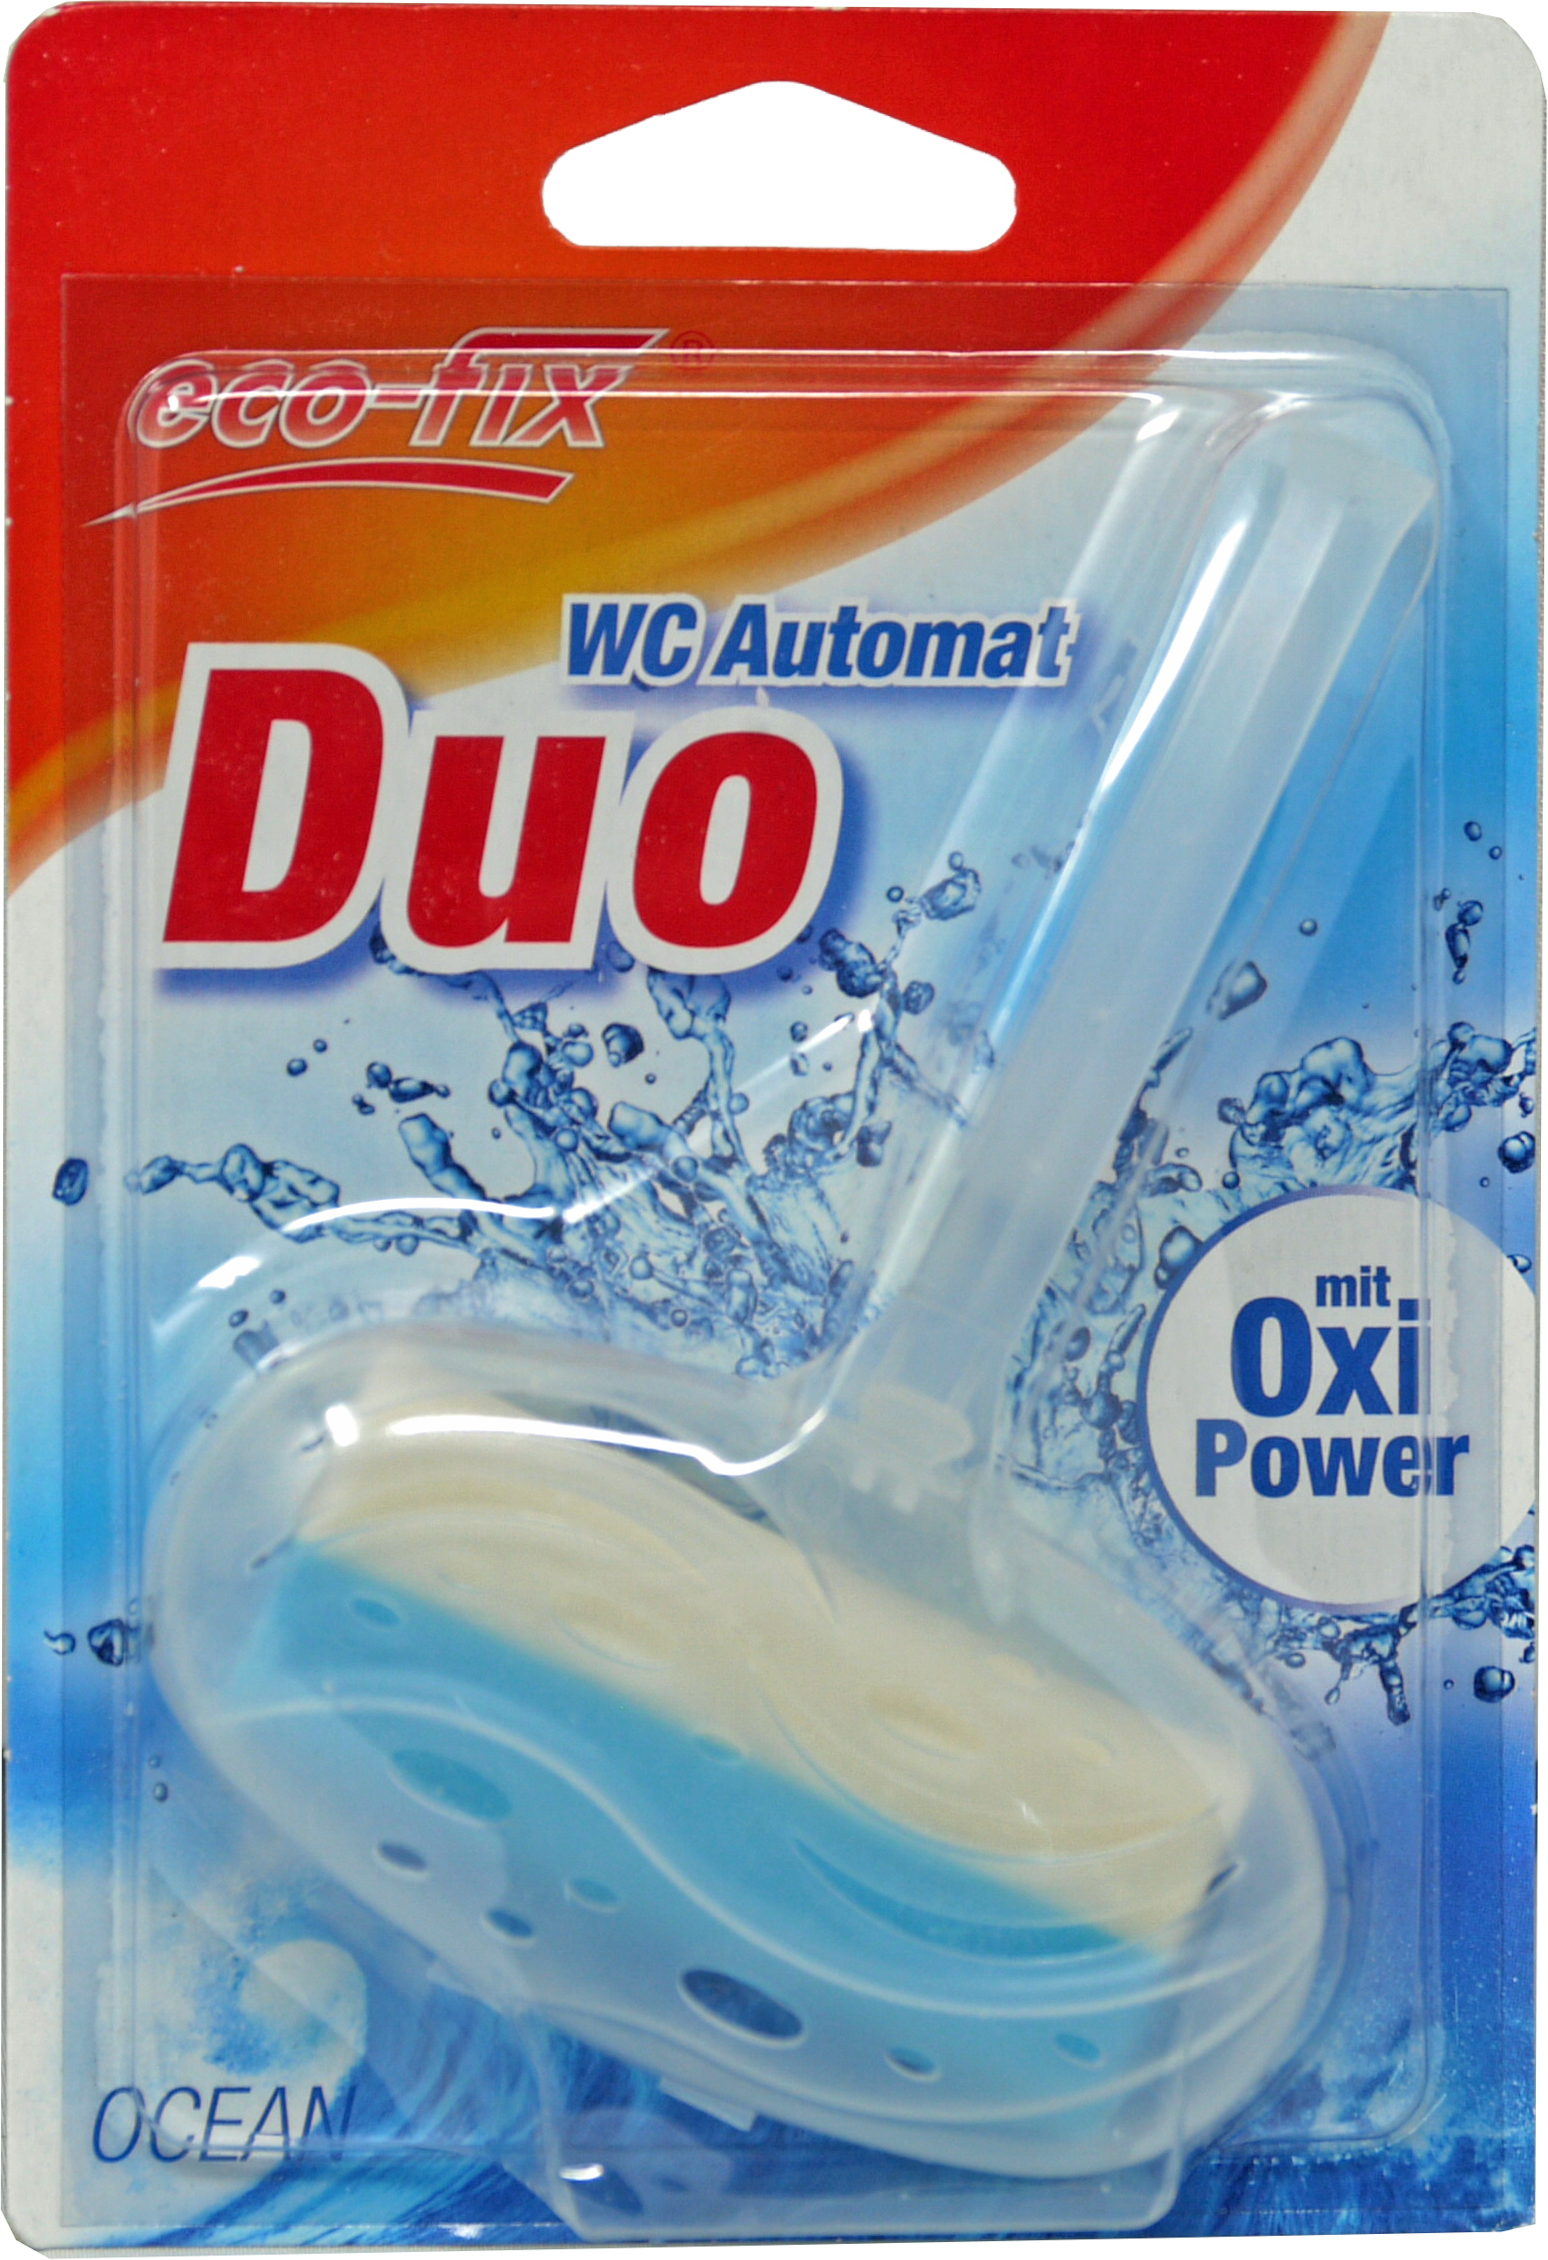 00873 - eco-fix WC Automat Duo mit Oxi-Power, 40 g, Ocean